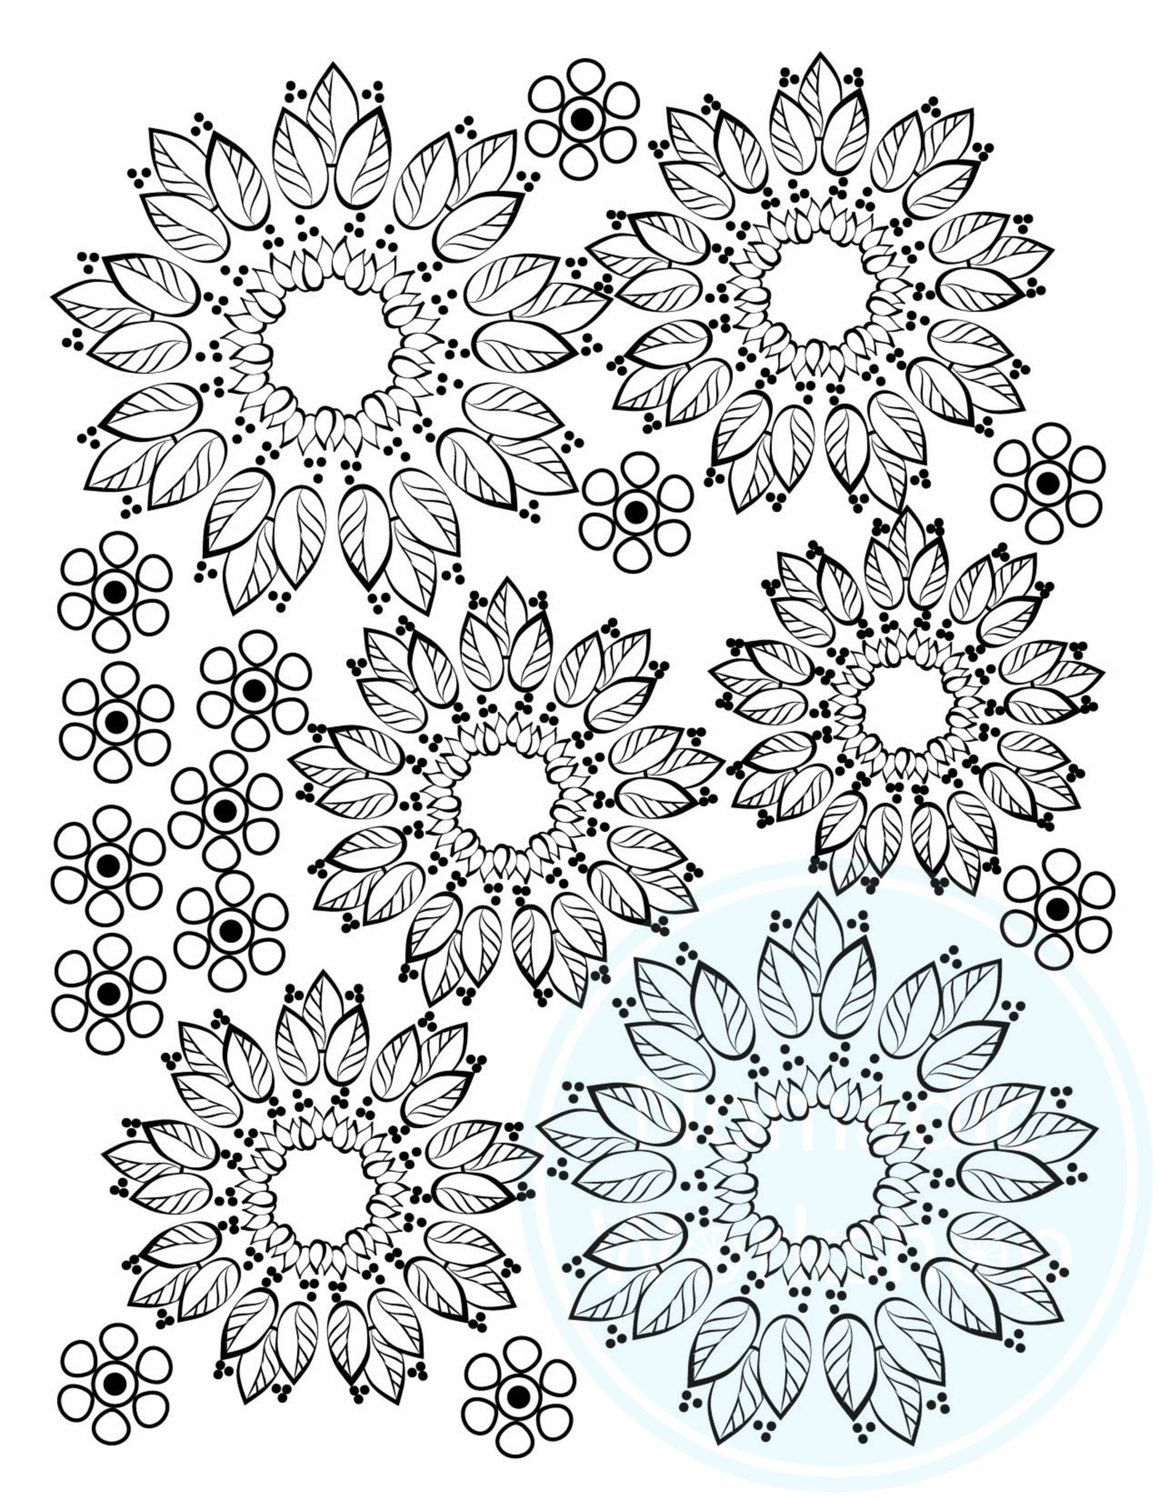 Coloring Page 3 1 FREE Coloring